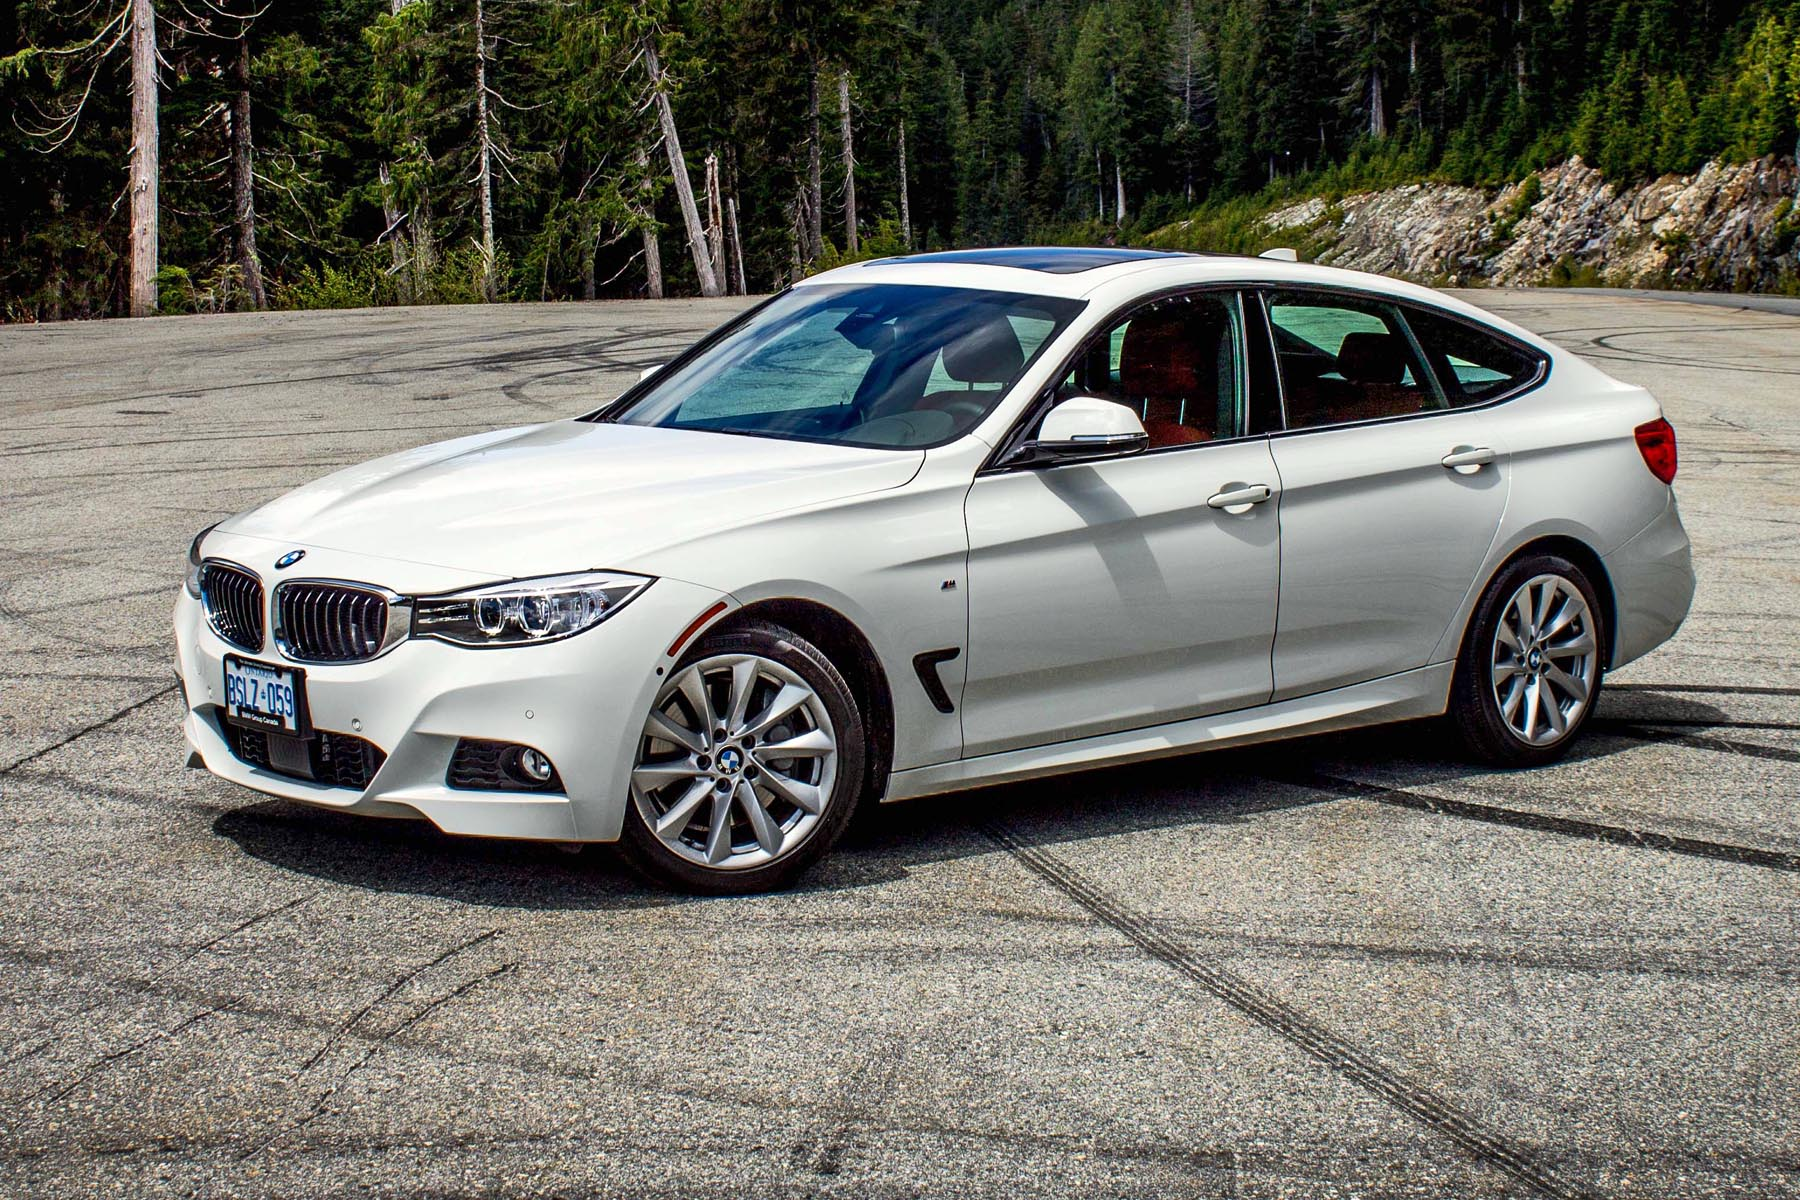 used vehicle review bmw 3 series f30 2012 2018 [ 1800 x 1200 Pixel ]